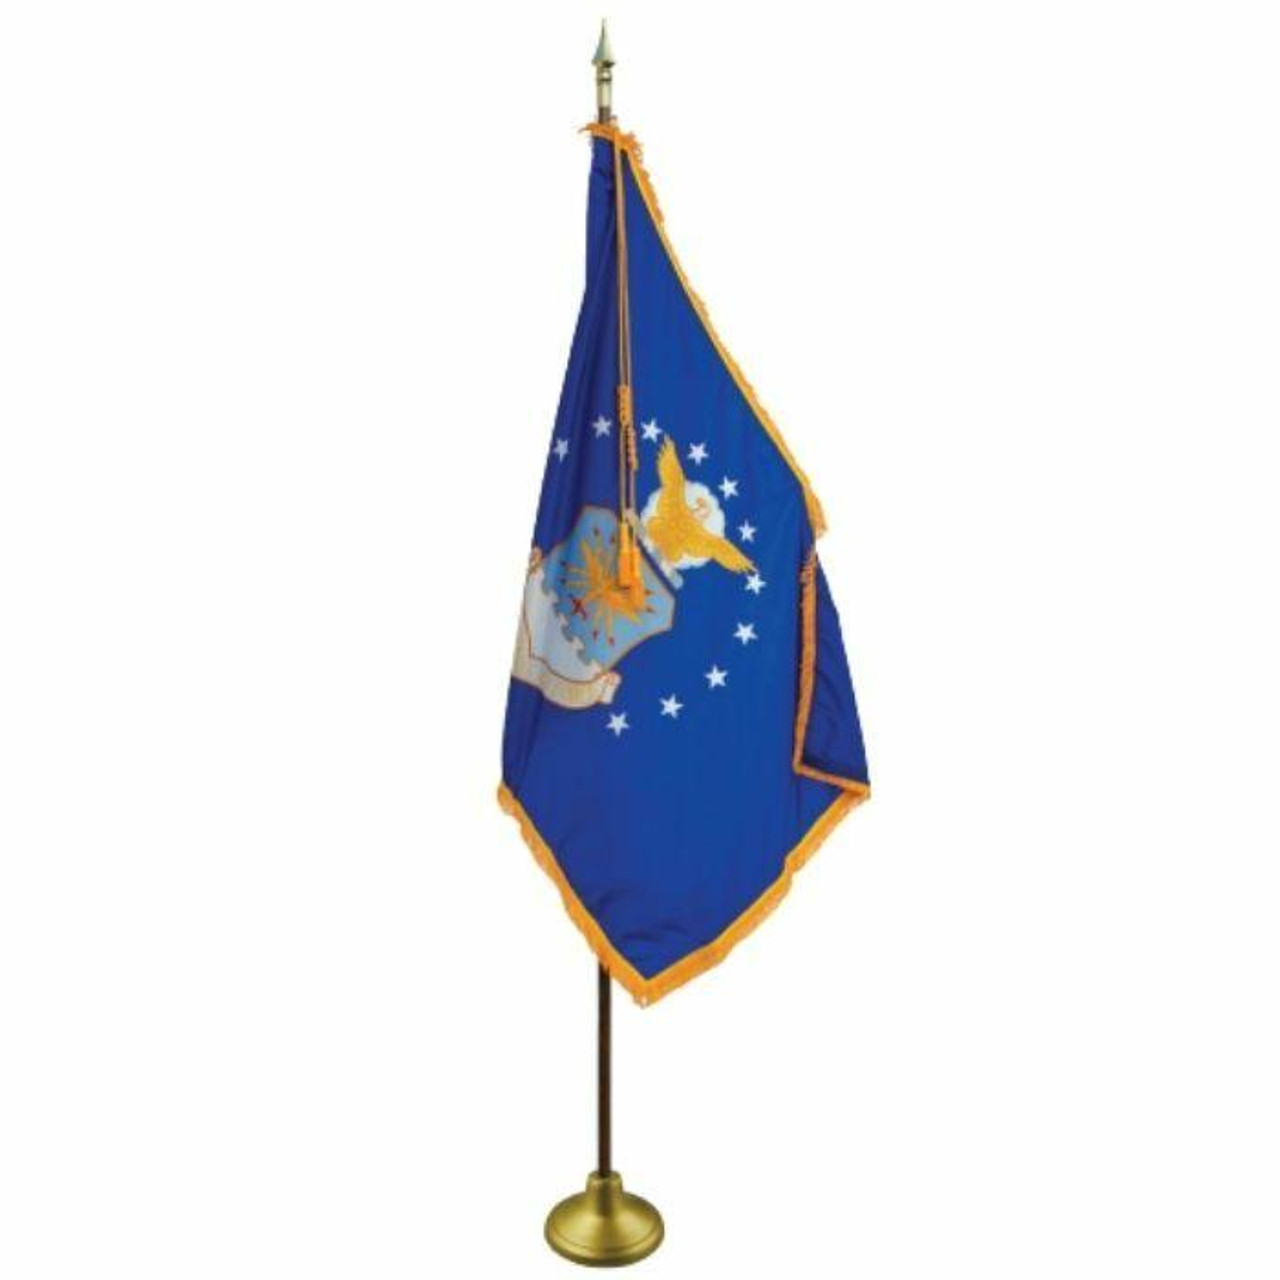 """The U.S. Air Force flag contains the U.S. Air Force's crest surrounded by thirteen white five-pointed stars on a blue field. The crest contains a golden eagle in clouds clutching a blue and white rope over a blue and white shield with a golden design on it. Beneath the shield is a white scroll reading """"United States Air Force"""" in golden lettering. It hangs at rest, attached to an ornate golden flagpole. The flag's sides not attached to the flagpole have golden fringes. A decorative gold cord and tassel sit at the top of the flagpole."""